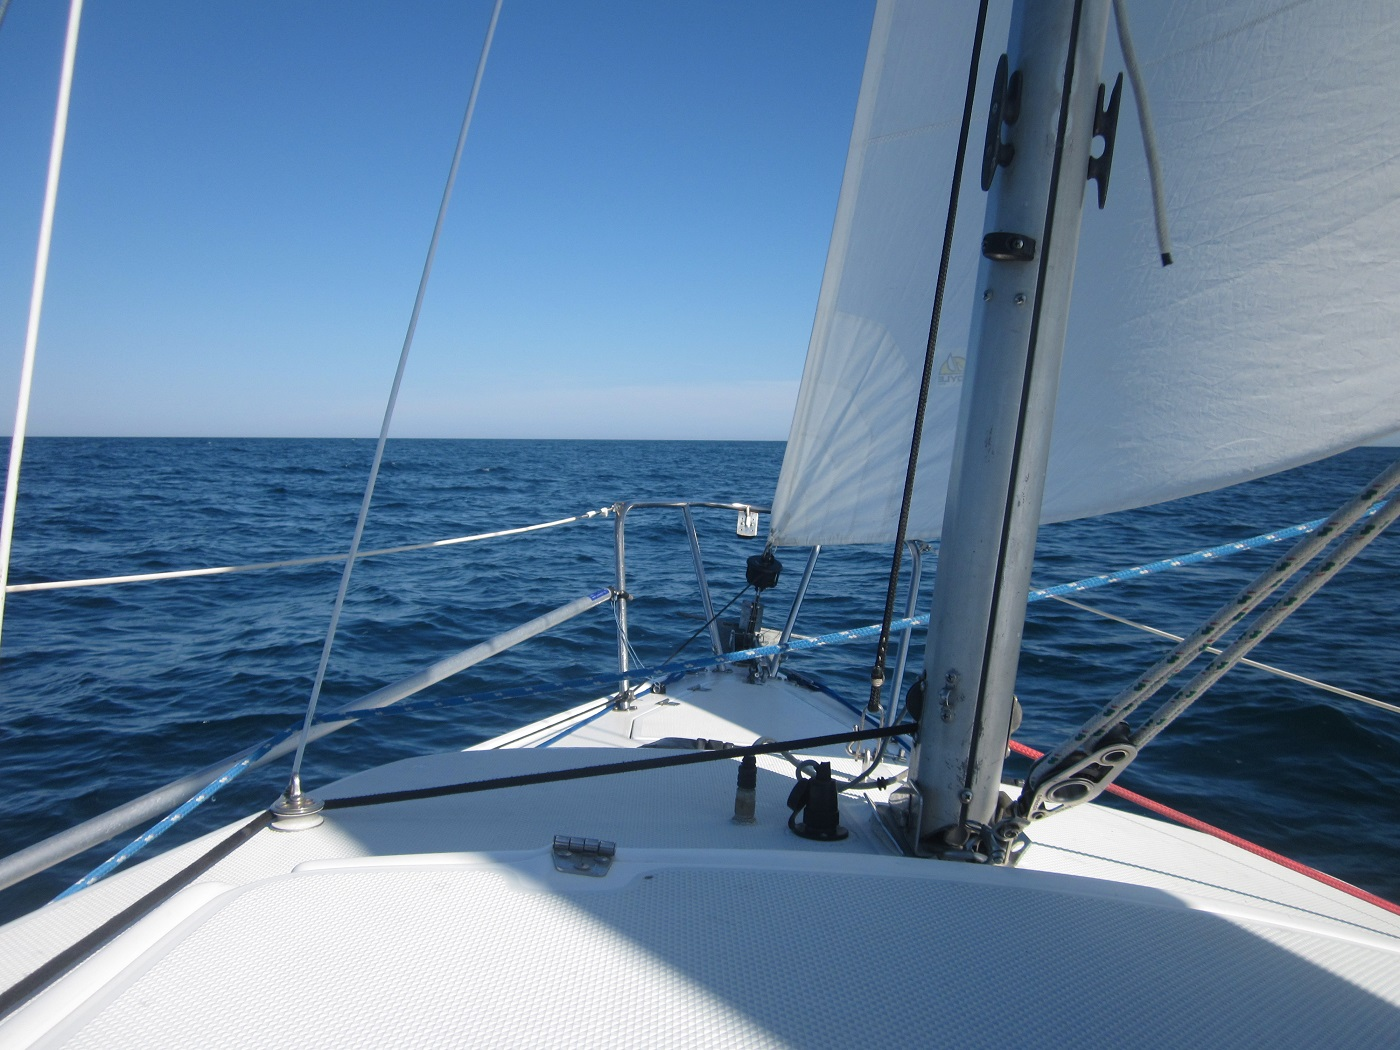 Angle of forestay | Sailboat Owners Forums